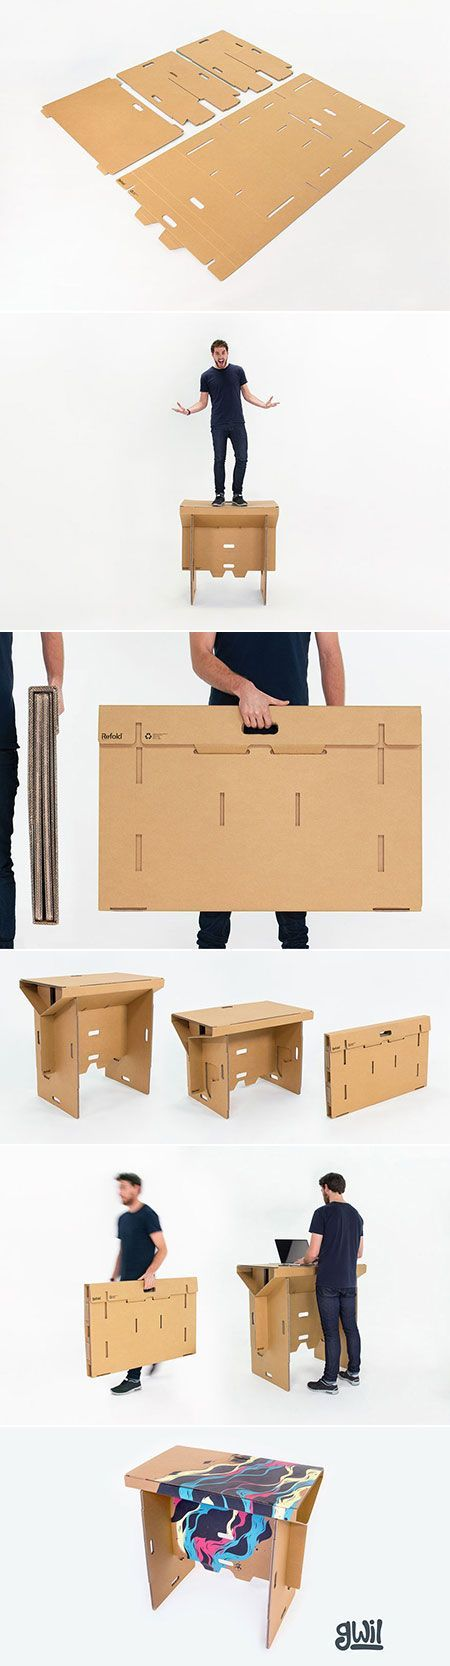 Most of us already know the many benefits of standing desks, but buying new office furniture can get expensive. These standing desks by Refold are an ideal solution, as they're lightweight and portable, so they can be assembled in just a few seconds and then tucked away when no longer in use. Refold desks are 100 percent recyclable, weigh just 6.5 kg (14 lbs), and fold up into a self-contained carry case.